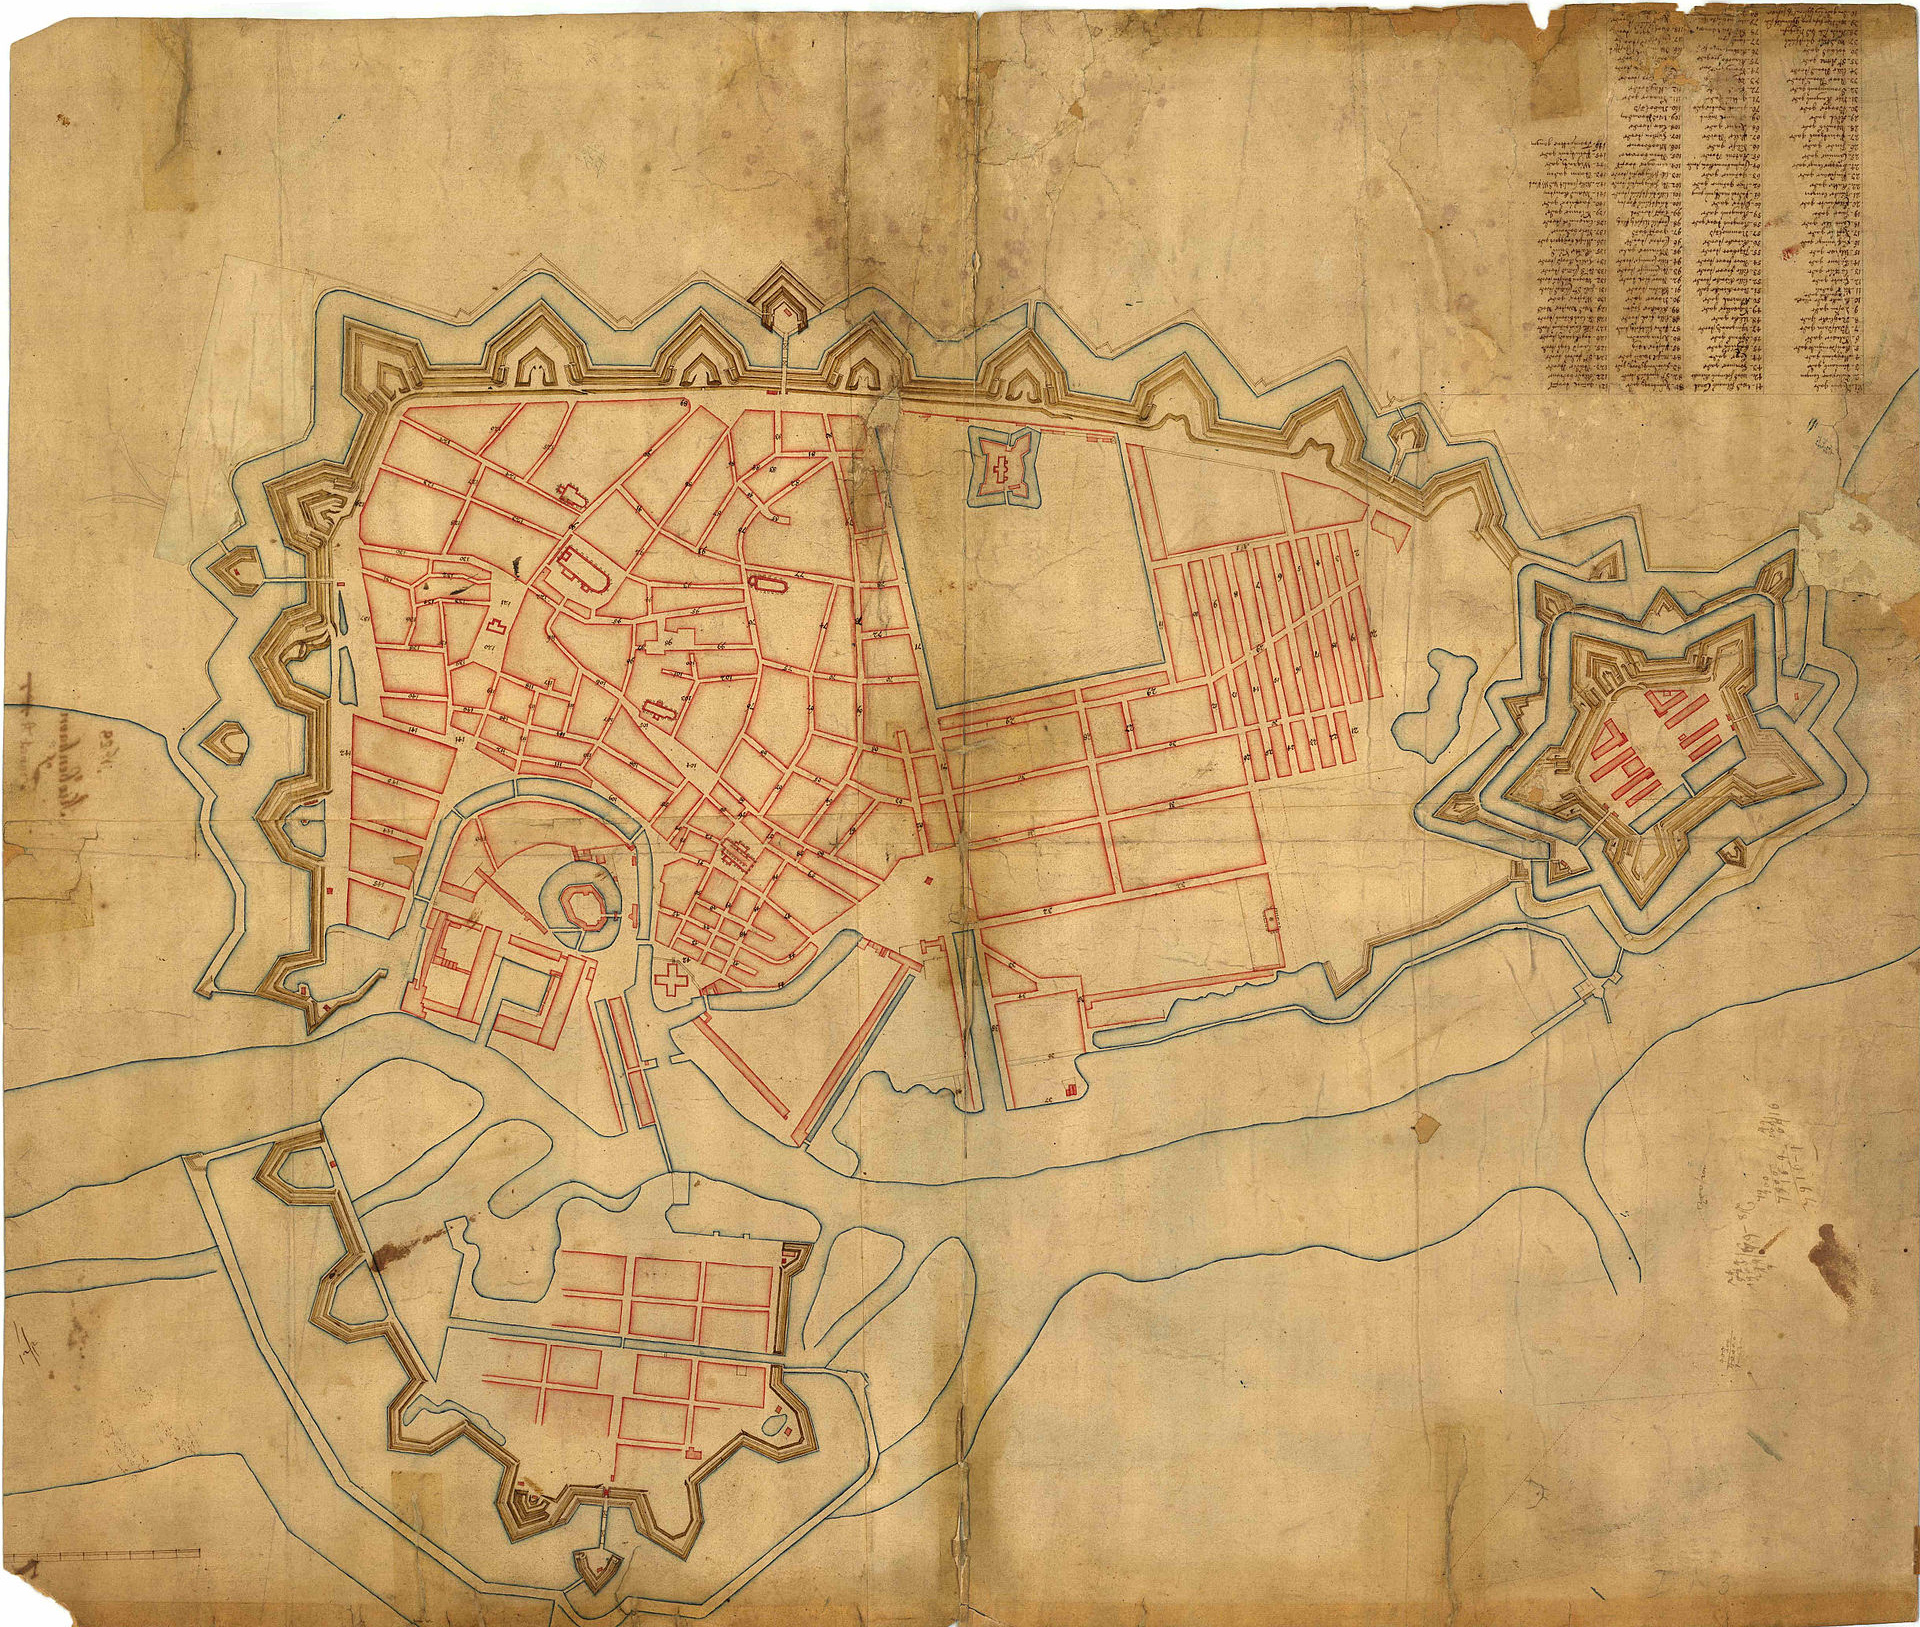 A map of 1685. Here it has been turned deliberately so that it is orientated to compare directly with the view of the city. The castle of Christiansborg is relatively obvious - centre left. The new Borsen has a canal on both long sides and runs down to a bridge over the harbour. Nyhavn is towards the centre of the map with the rope works and ship yard to its left. Rosenborg with its garden is here at the top of the map within newly extended embankments and Kastellet begun in 1662 is shown on the far right of the map with the Nyboder houses as a regular grid of streets between. Christianshavn is the fortified settlement on the opposite side of the harbour to the Castle and the city. This map dates from before the new dockyards of Holmen were constructed.